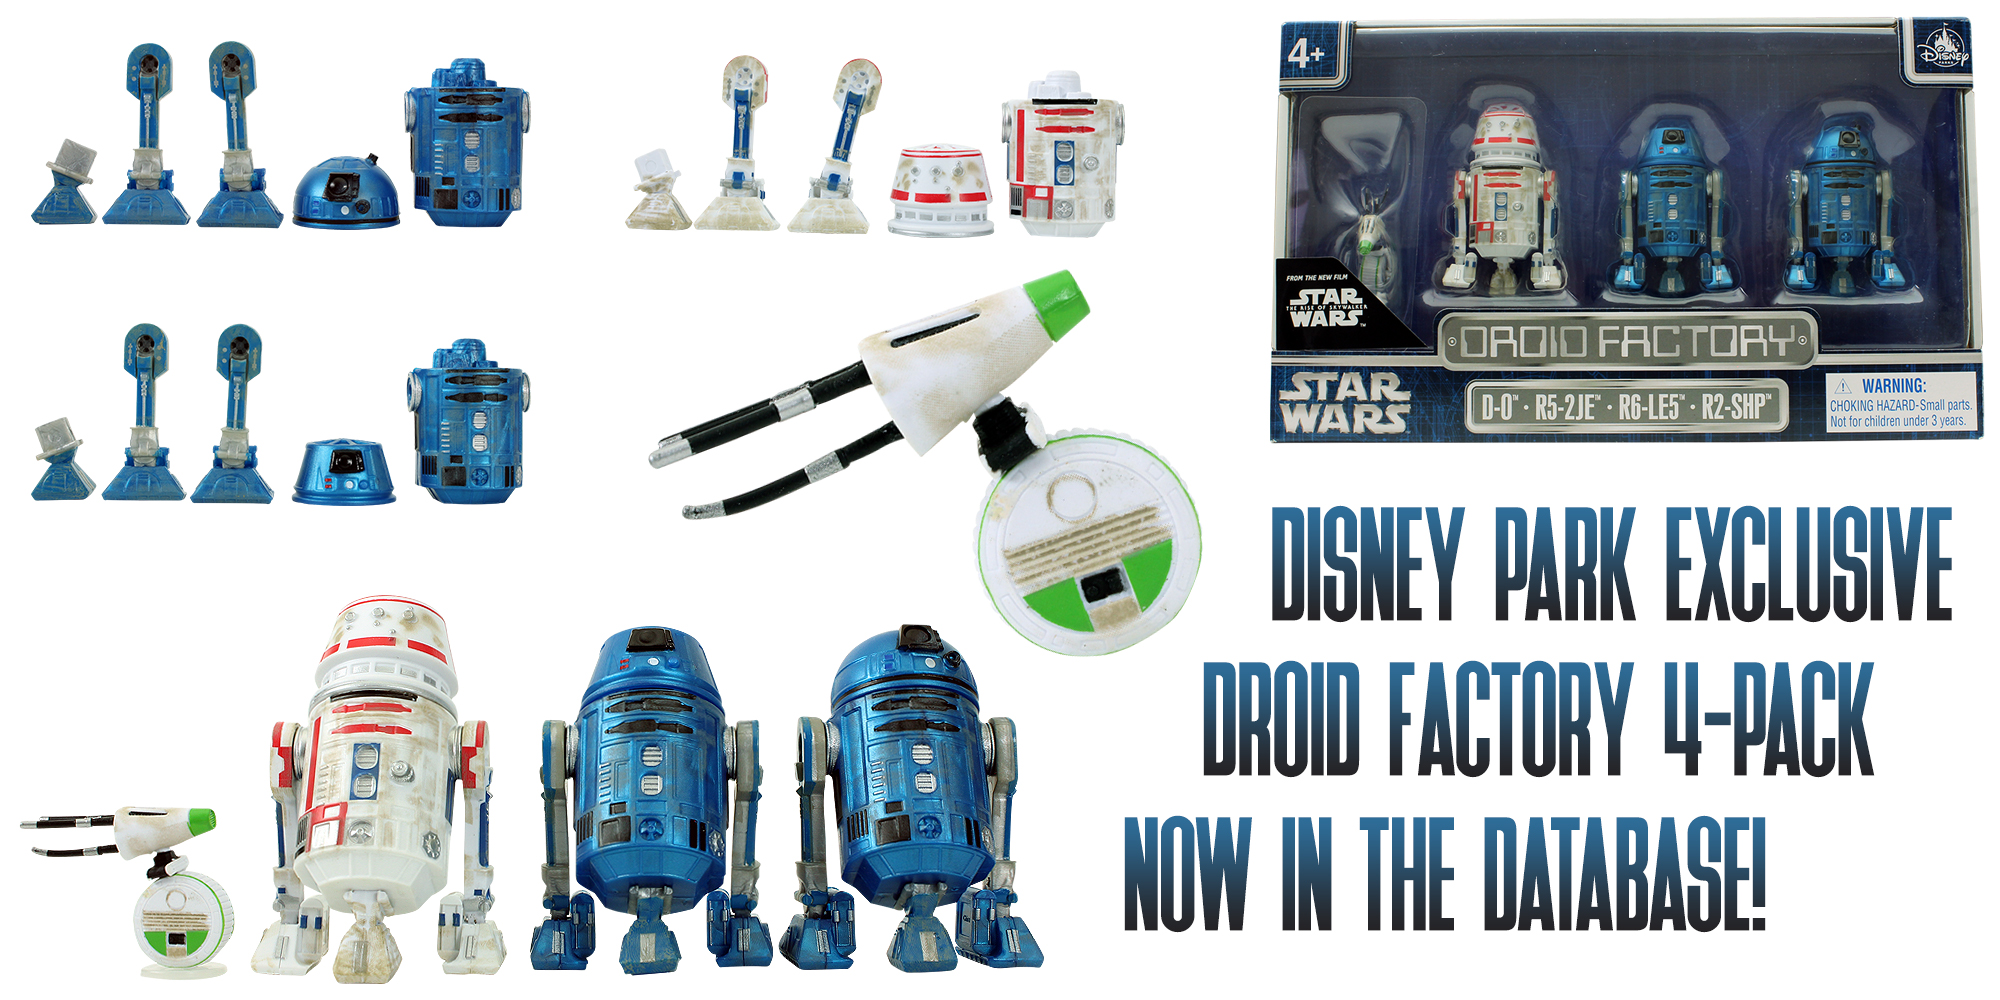 Droid Factory 4-Pack